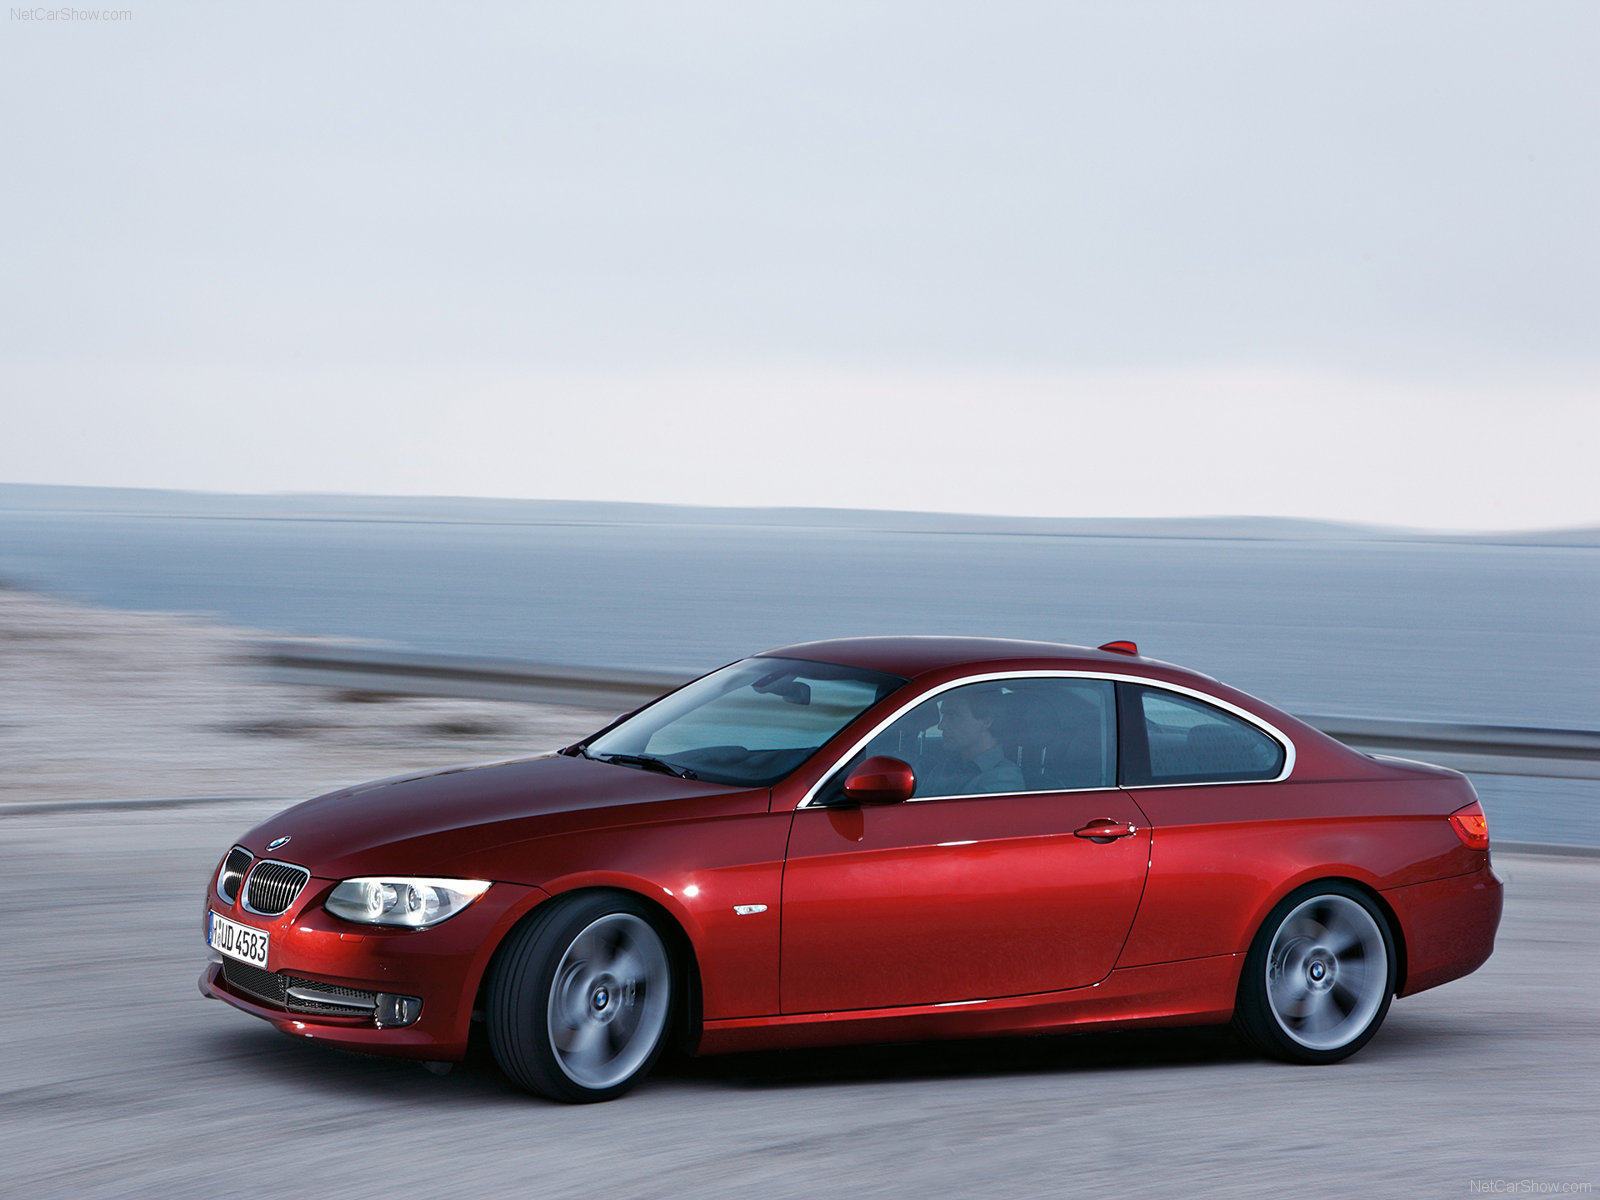 bmw 3 series e92 coupe picture 70721 bmw photo gallery. Black Bedroom Furniture Sets. Home Design Ideas